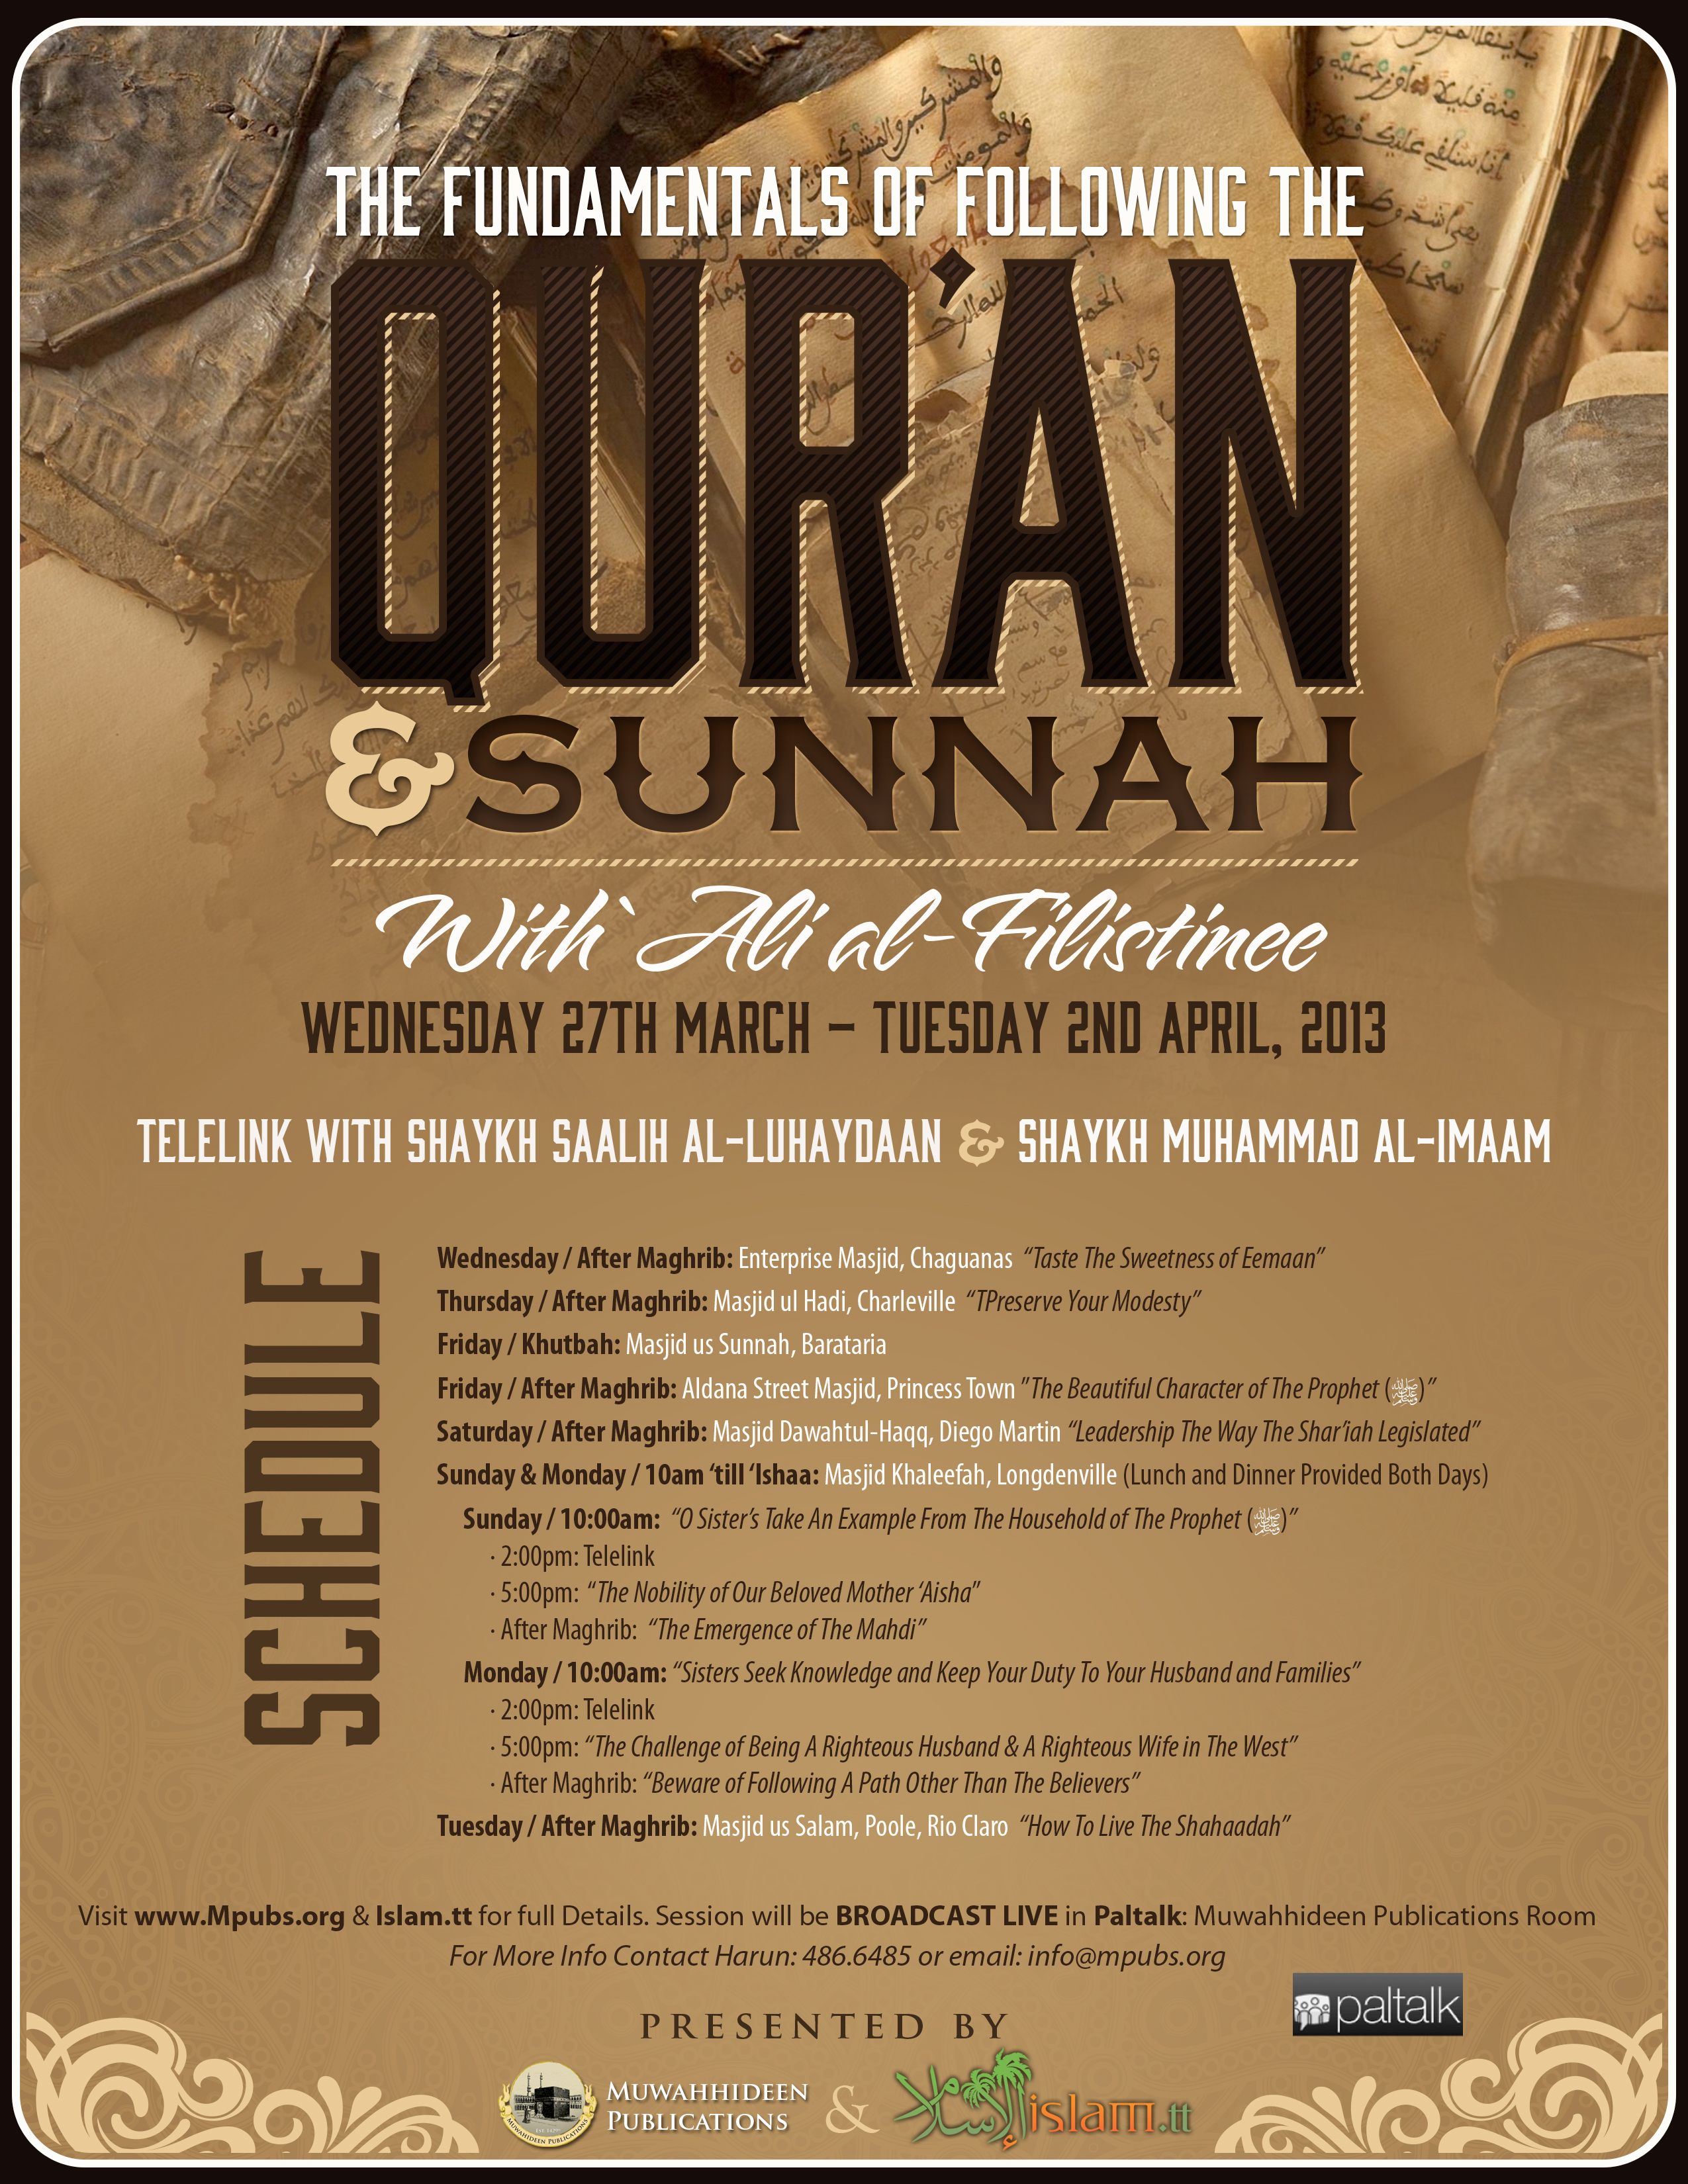 Seminar 20130328 easter fundamentals of quraan and sunnah